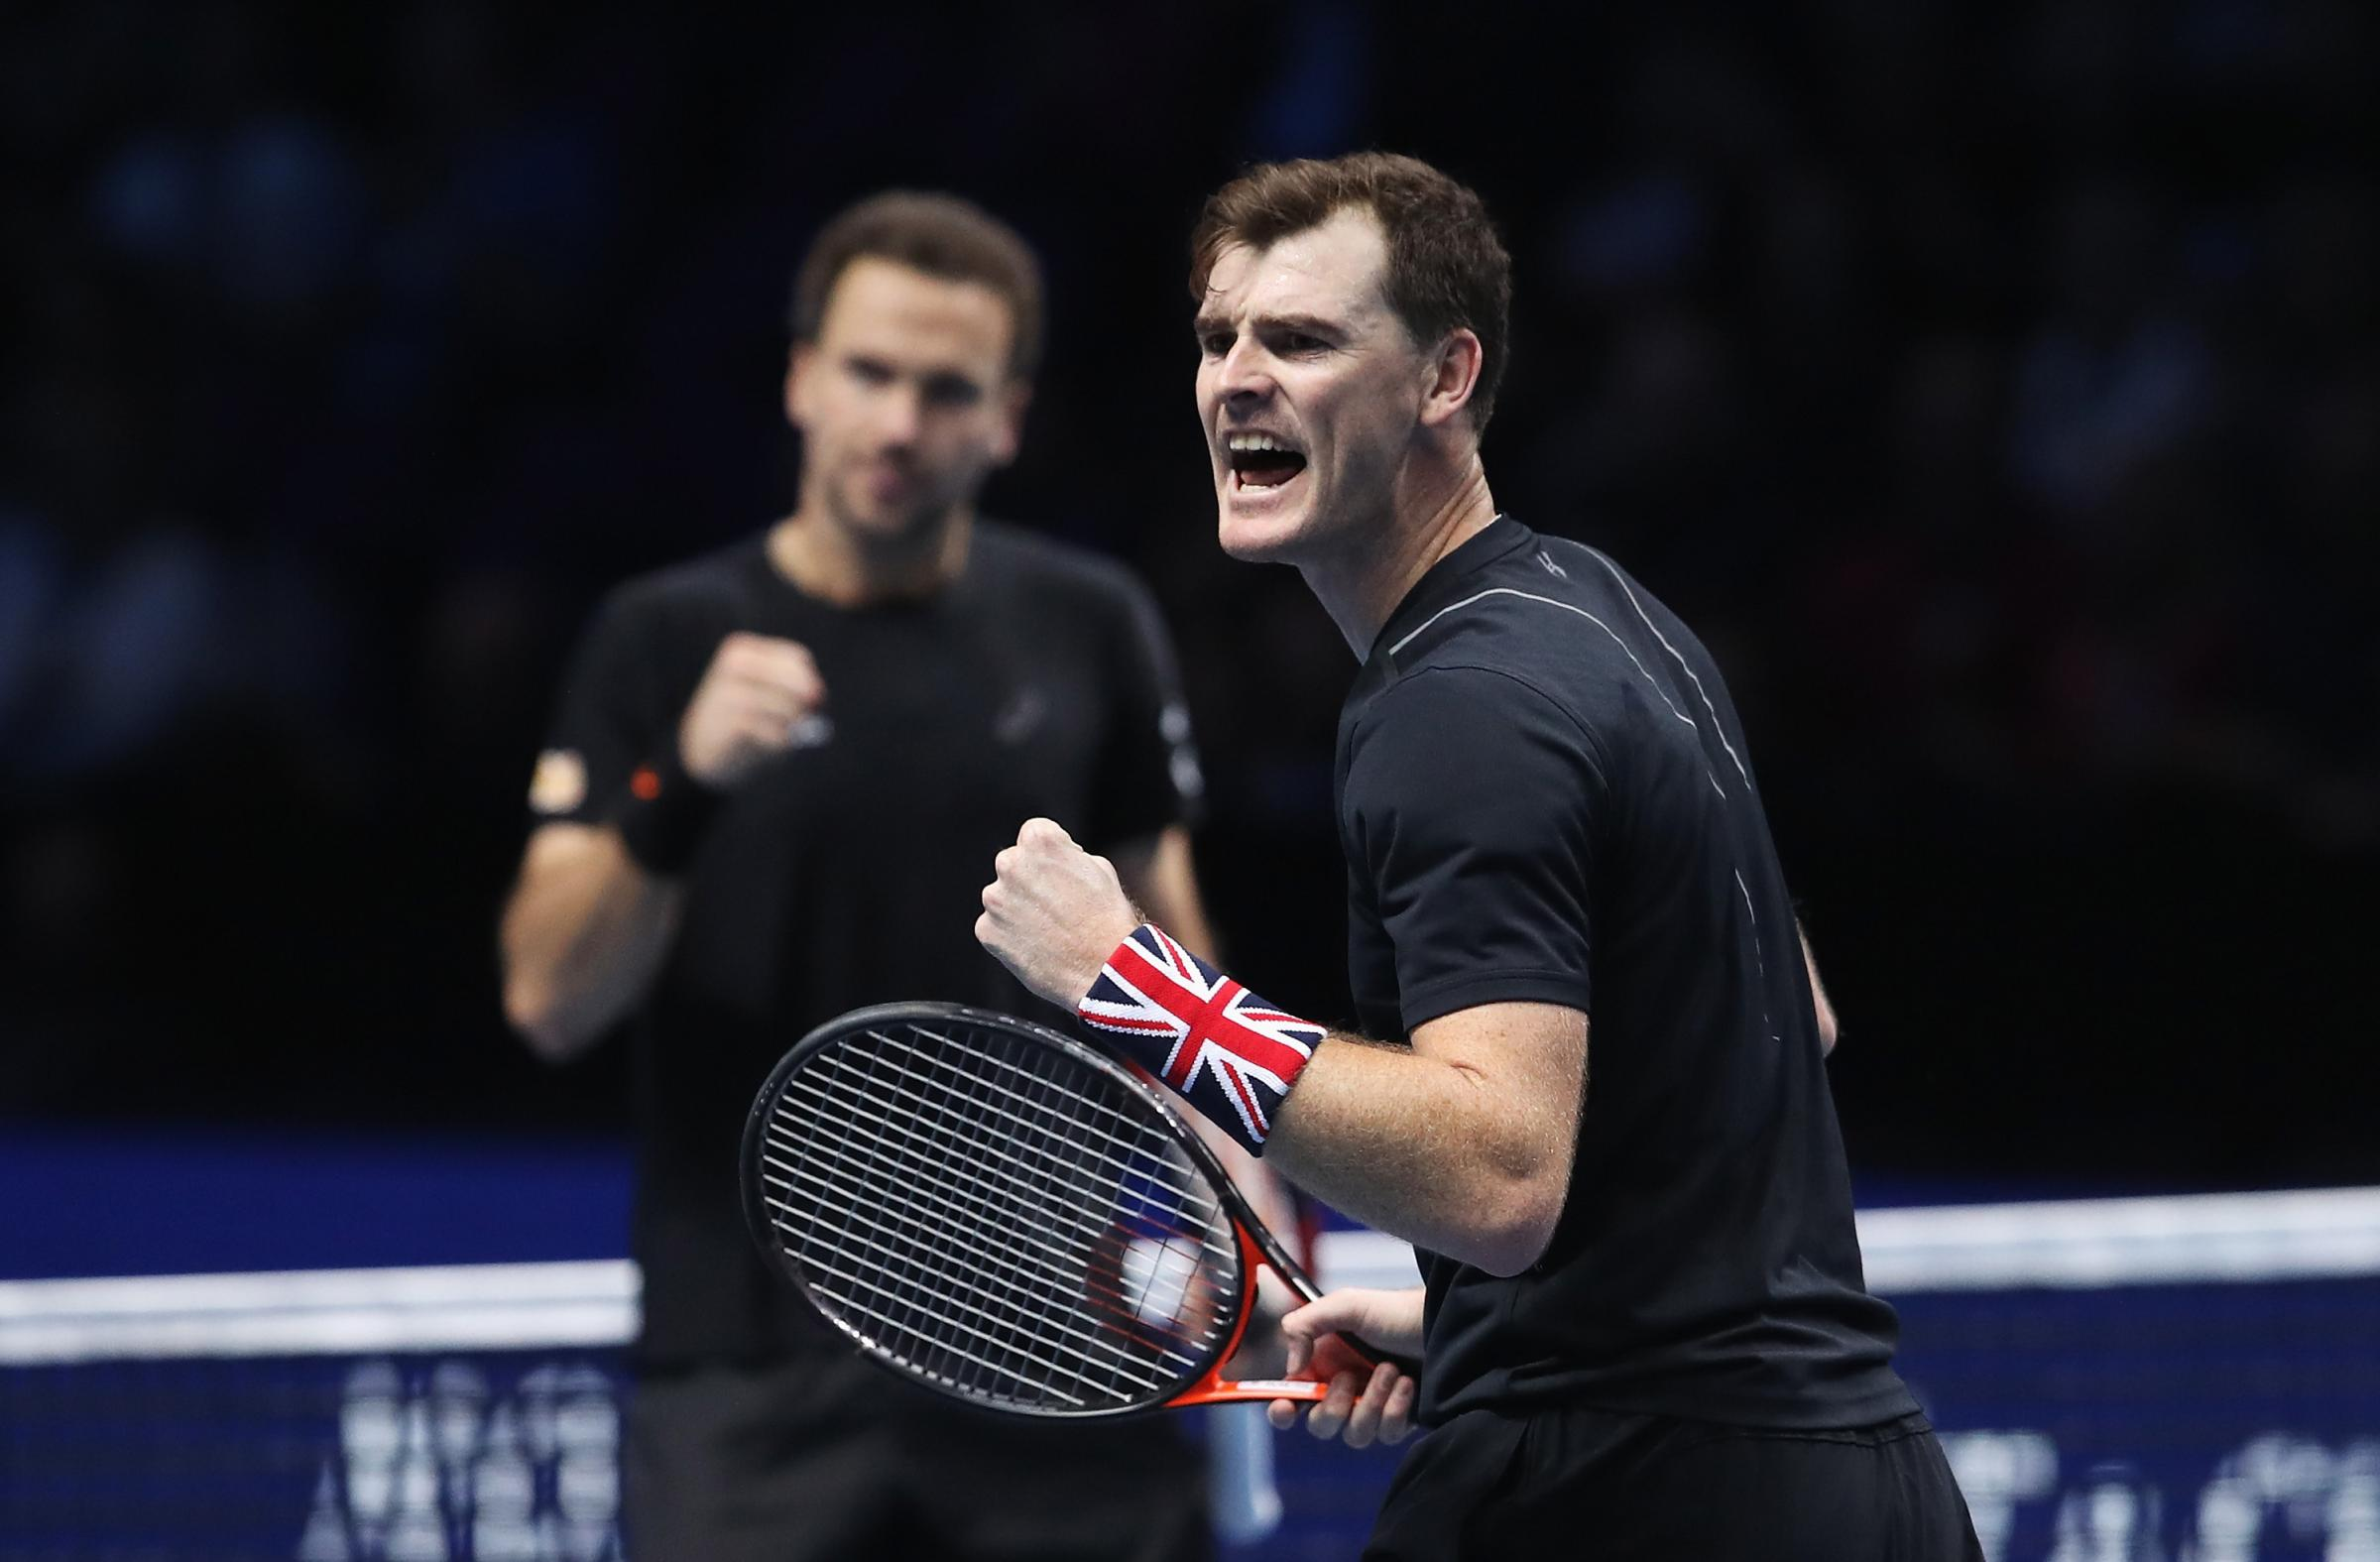 Jamie Murray was playing in Great Britain's David Cup tie against Uzbekistan